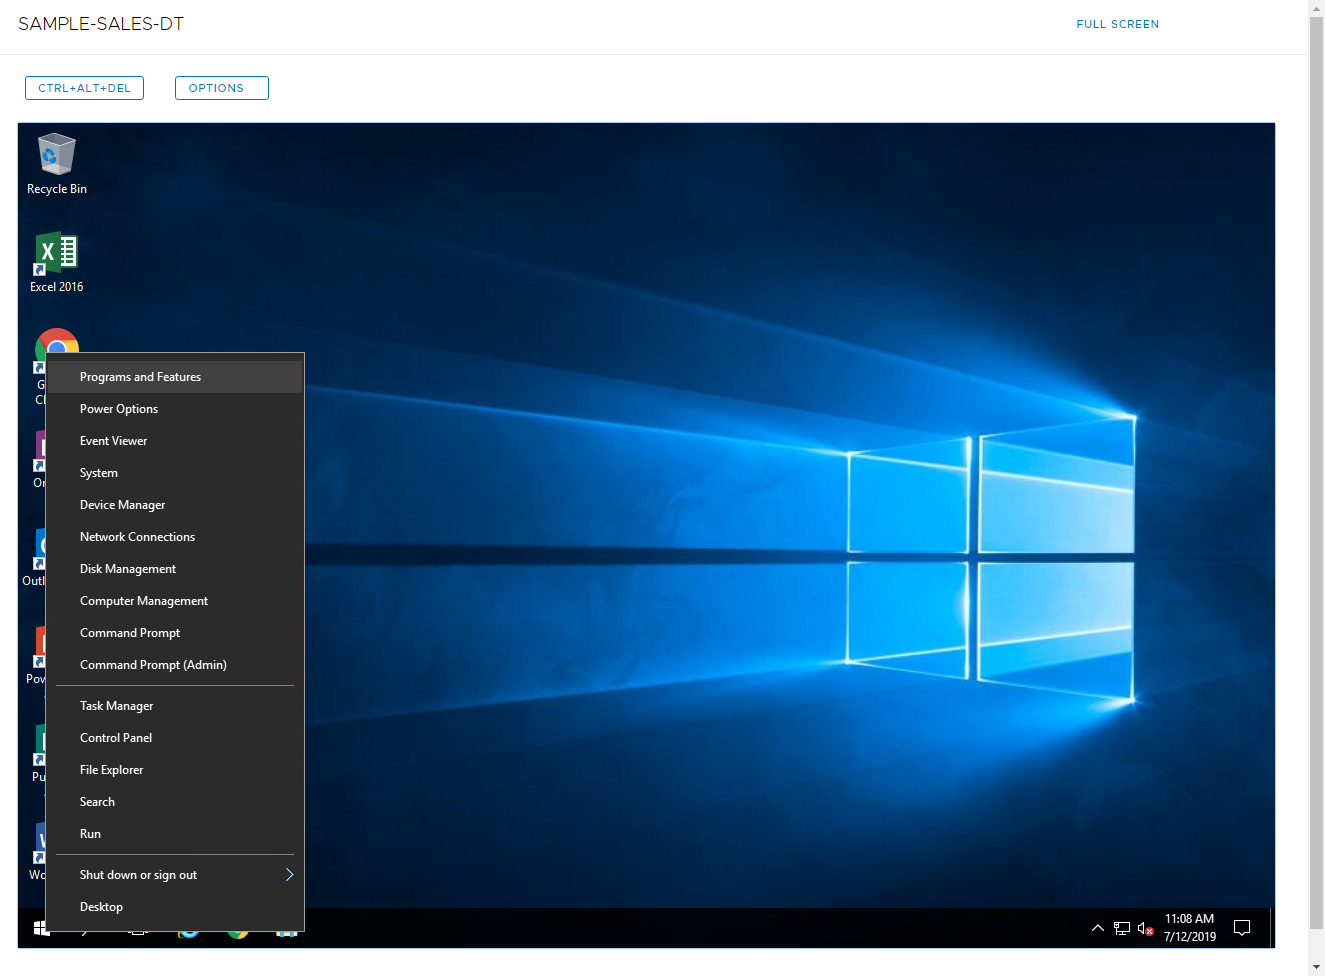 CCT-201903042 - Configure Office 365 Shared Computer Activation